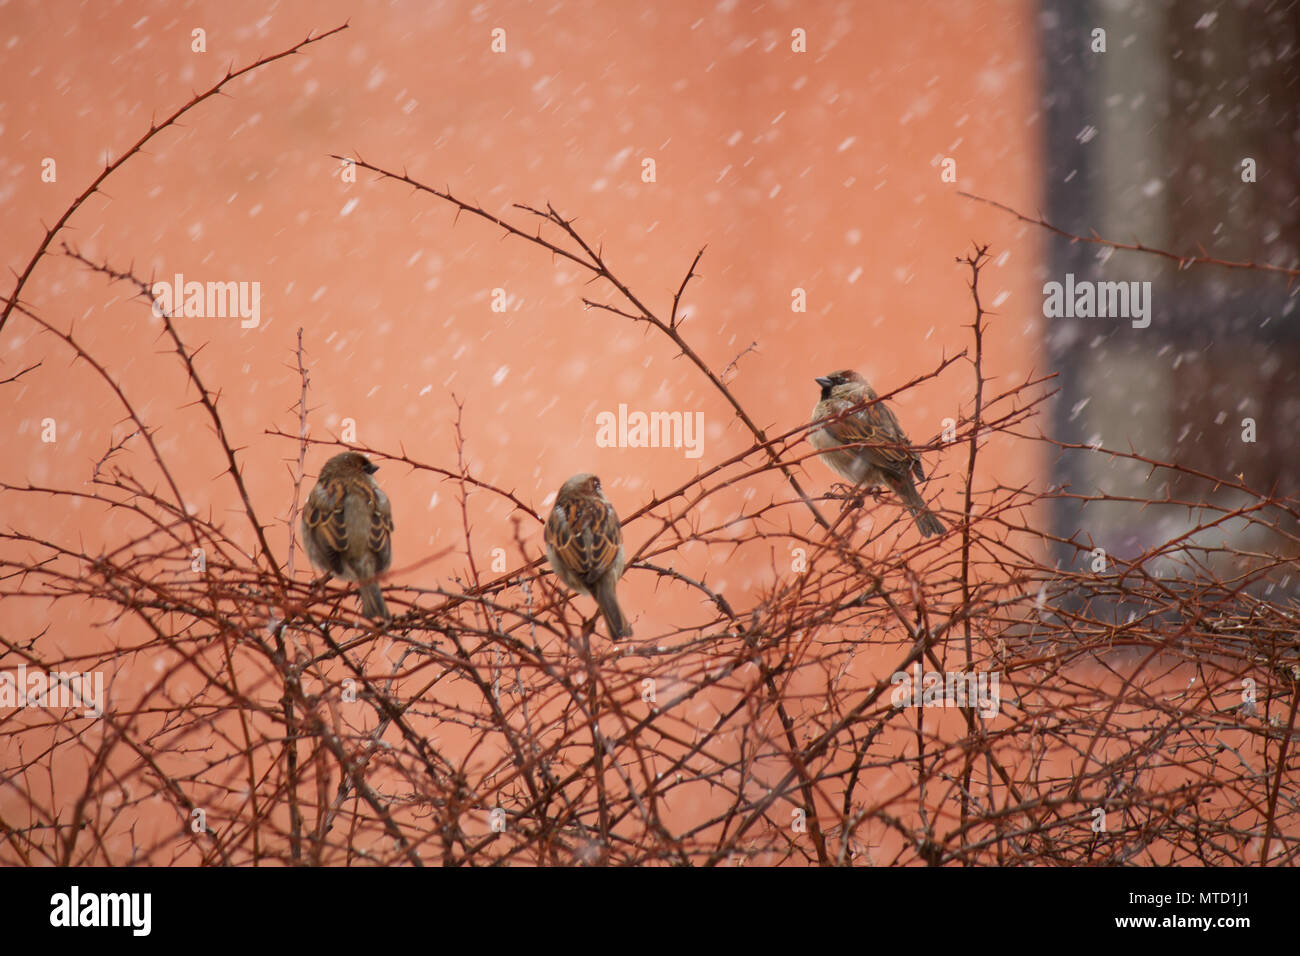 Three house sparrows (Passer domesticus) in a shrub in Oslo Norway - Stock Image